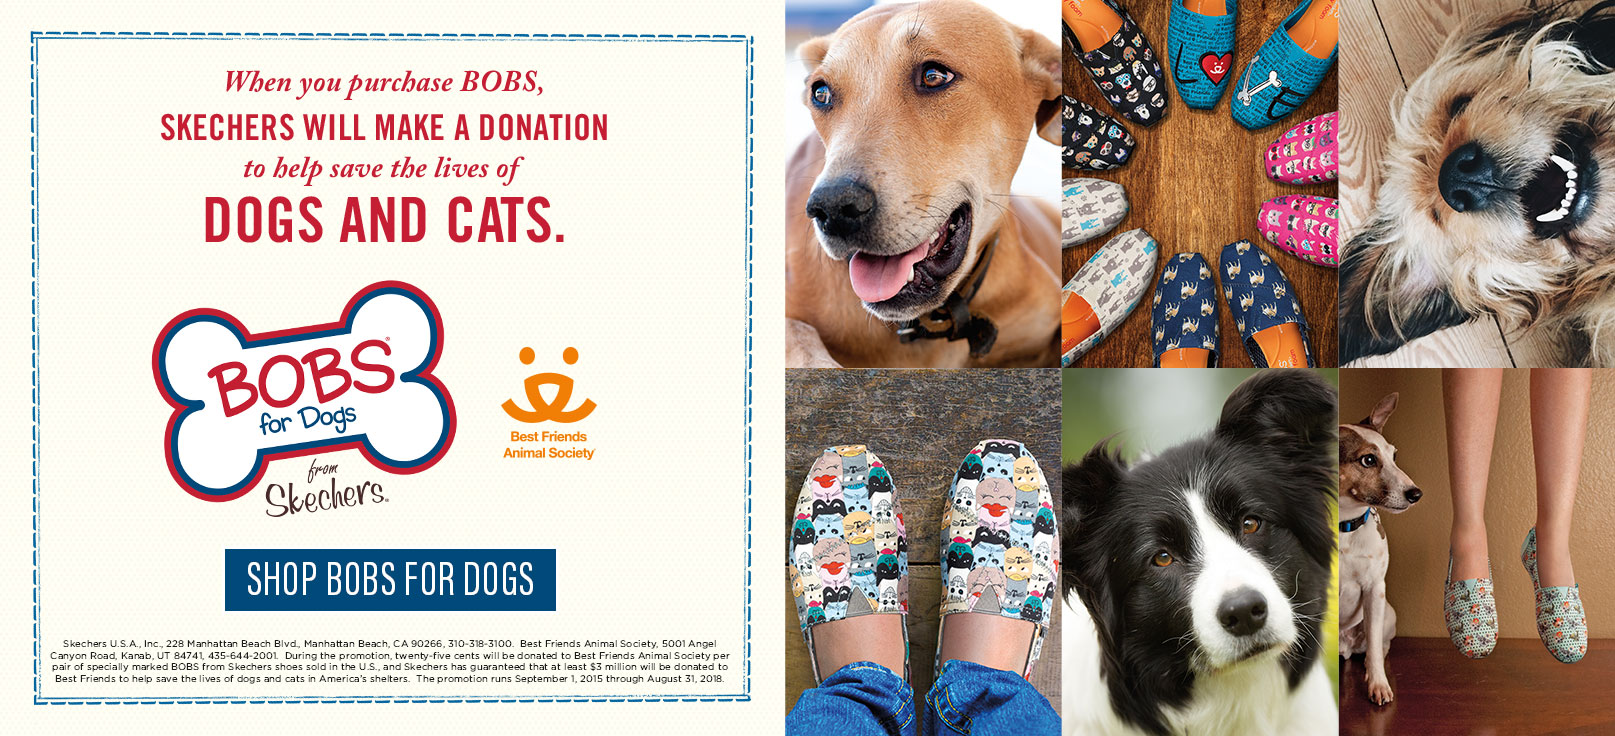 Skechers BOBS for Dogs, casual lifestyle shoes that benefit Best Friends Animal Society